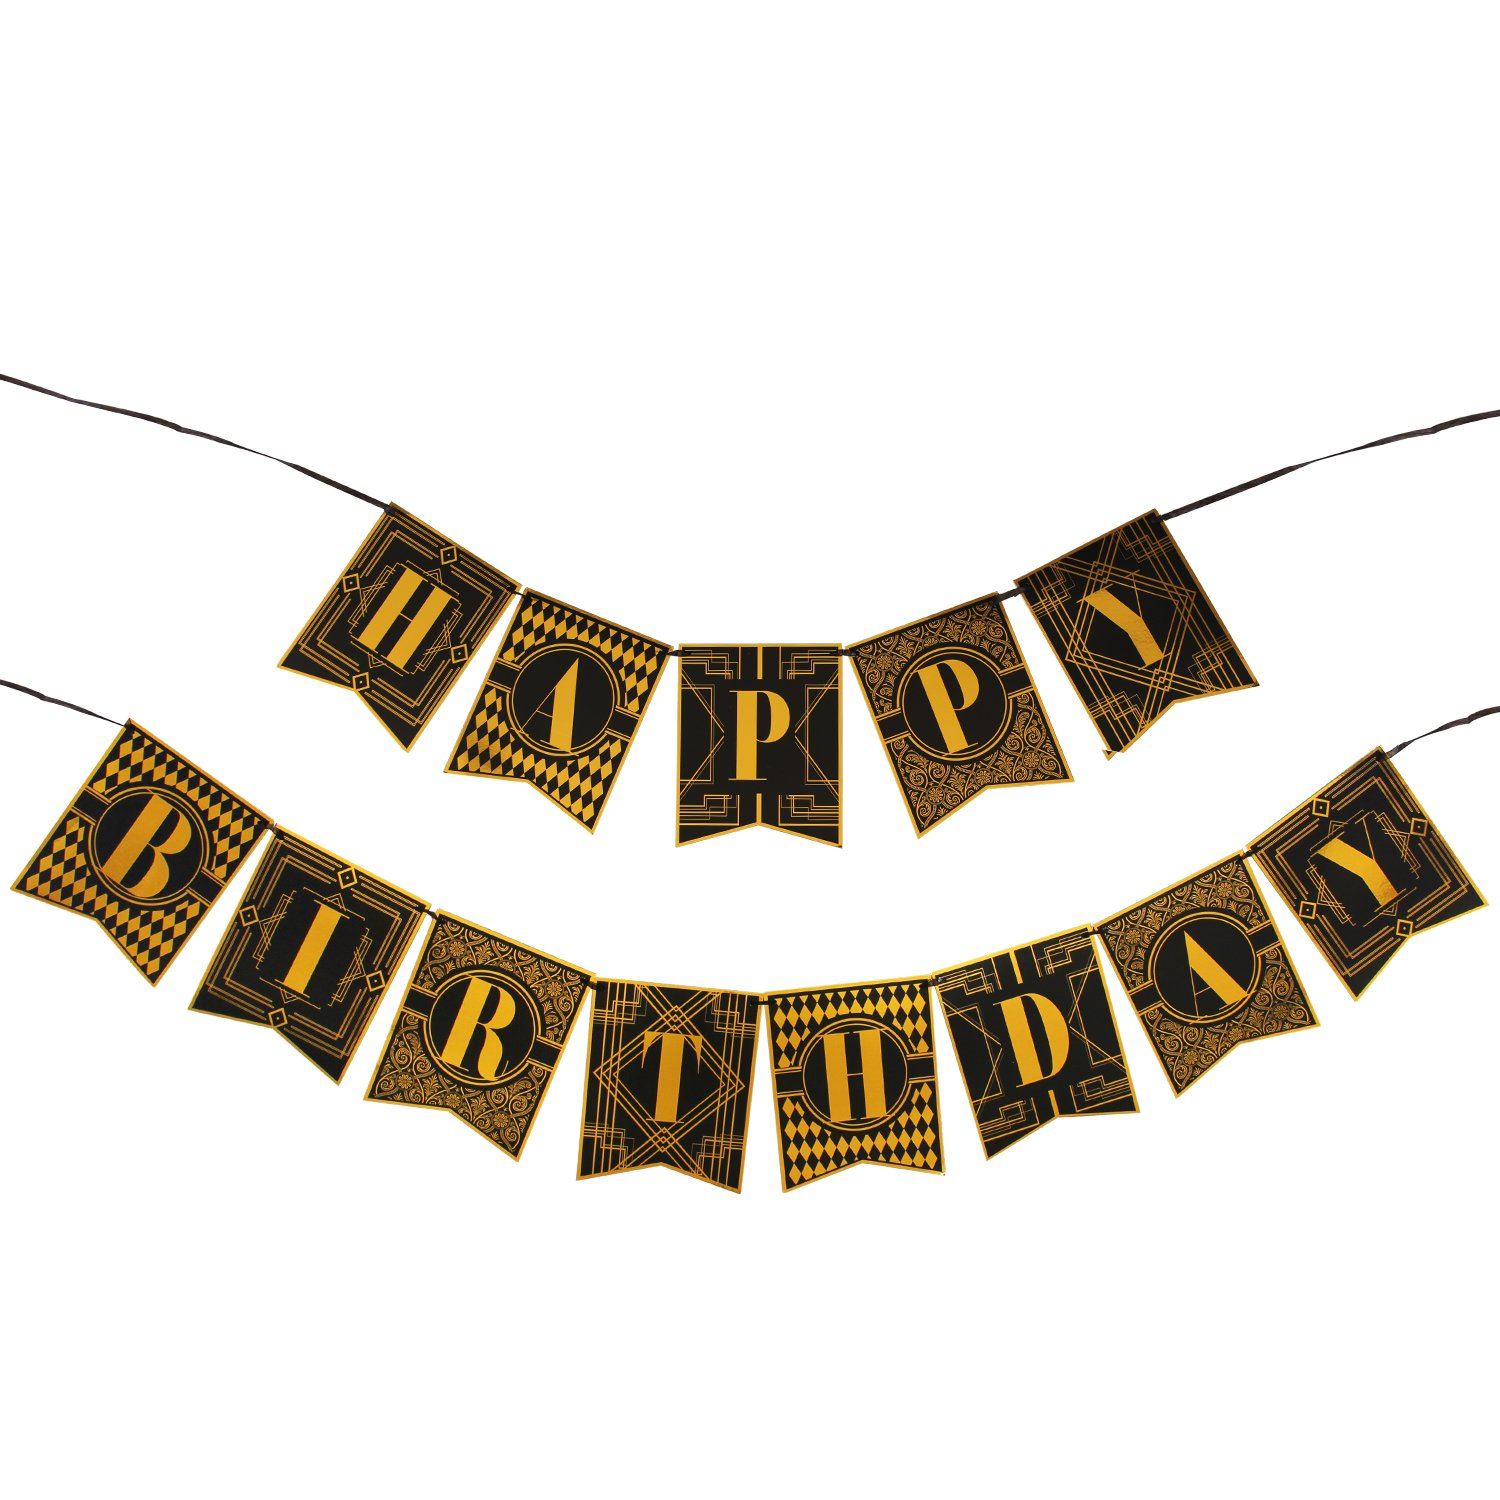 WERNNSAI 1920s Happy Birthday Bunting Banner Roaring 20s Themed Party  Decoration Supplies Luxury Gold and Black Banner for Birthday Party Favors.